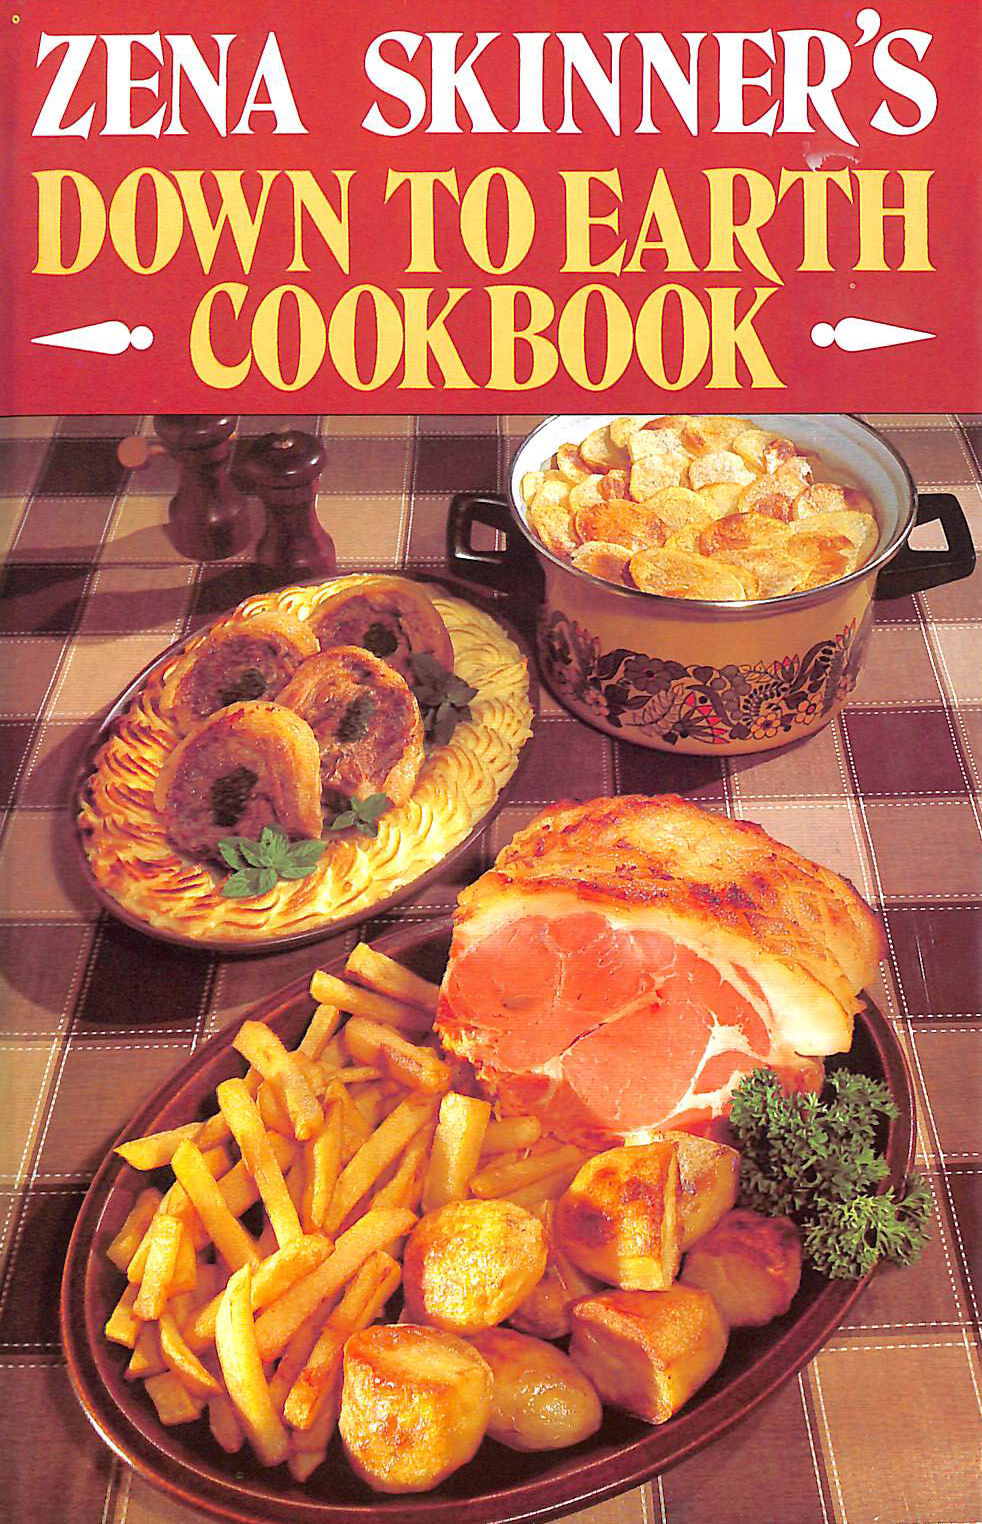 Image for Zena Skinner's Down to Earth Cook Book